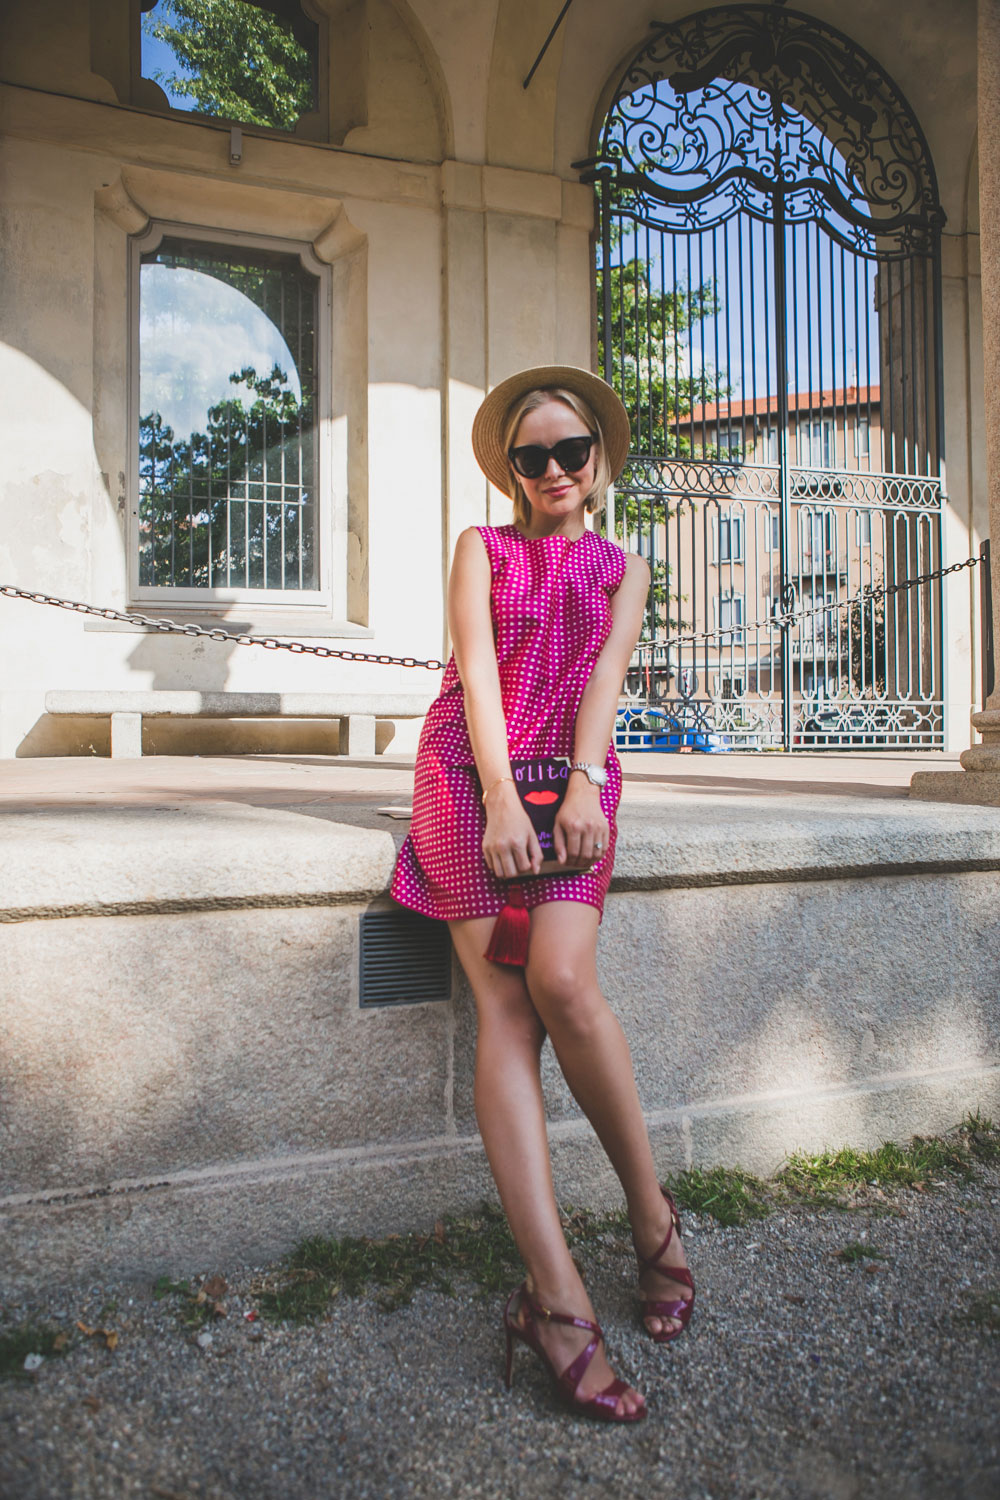 darya-kamalova-fashion-lifestyle-blogger-from-thecablook-com-on-mfw-milan-fashion-week-ss15-wearins-rafinad-dress-dolce-gabbana-shoes-catarzi-hat-celine-audrey-sunglasses-street-style-day-5-anna-dello-russo-6671